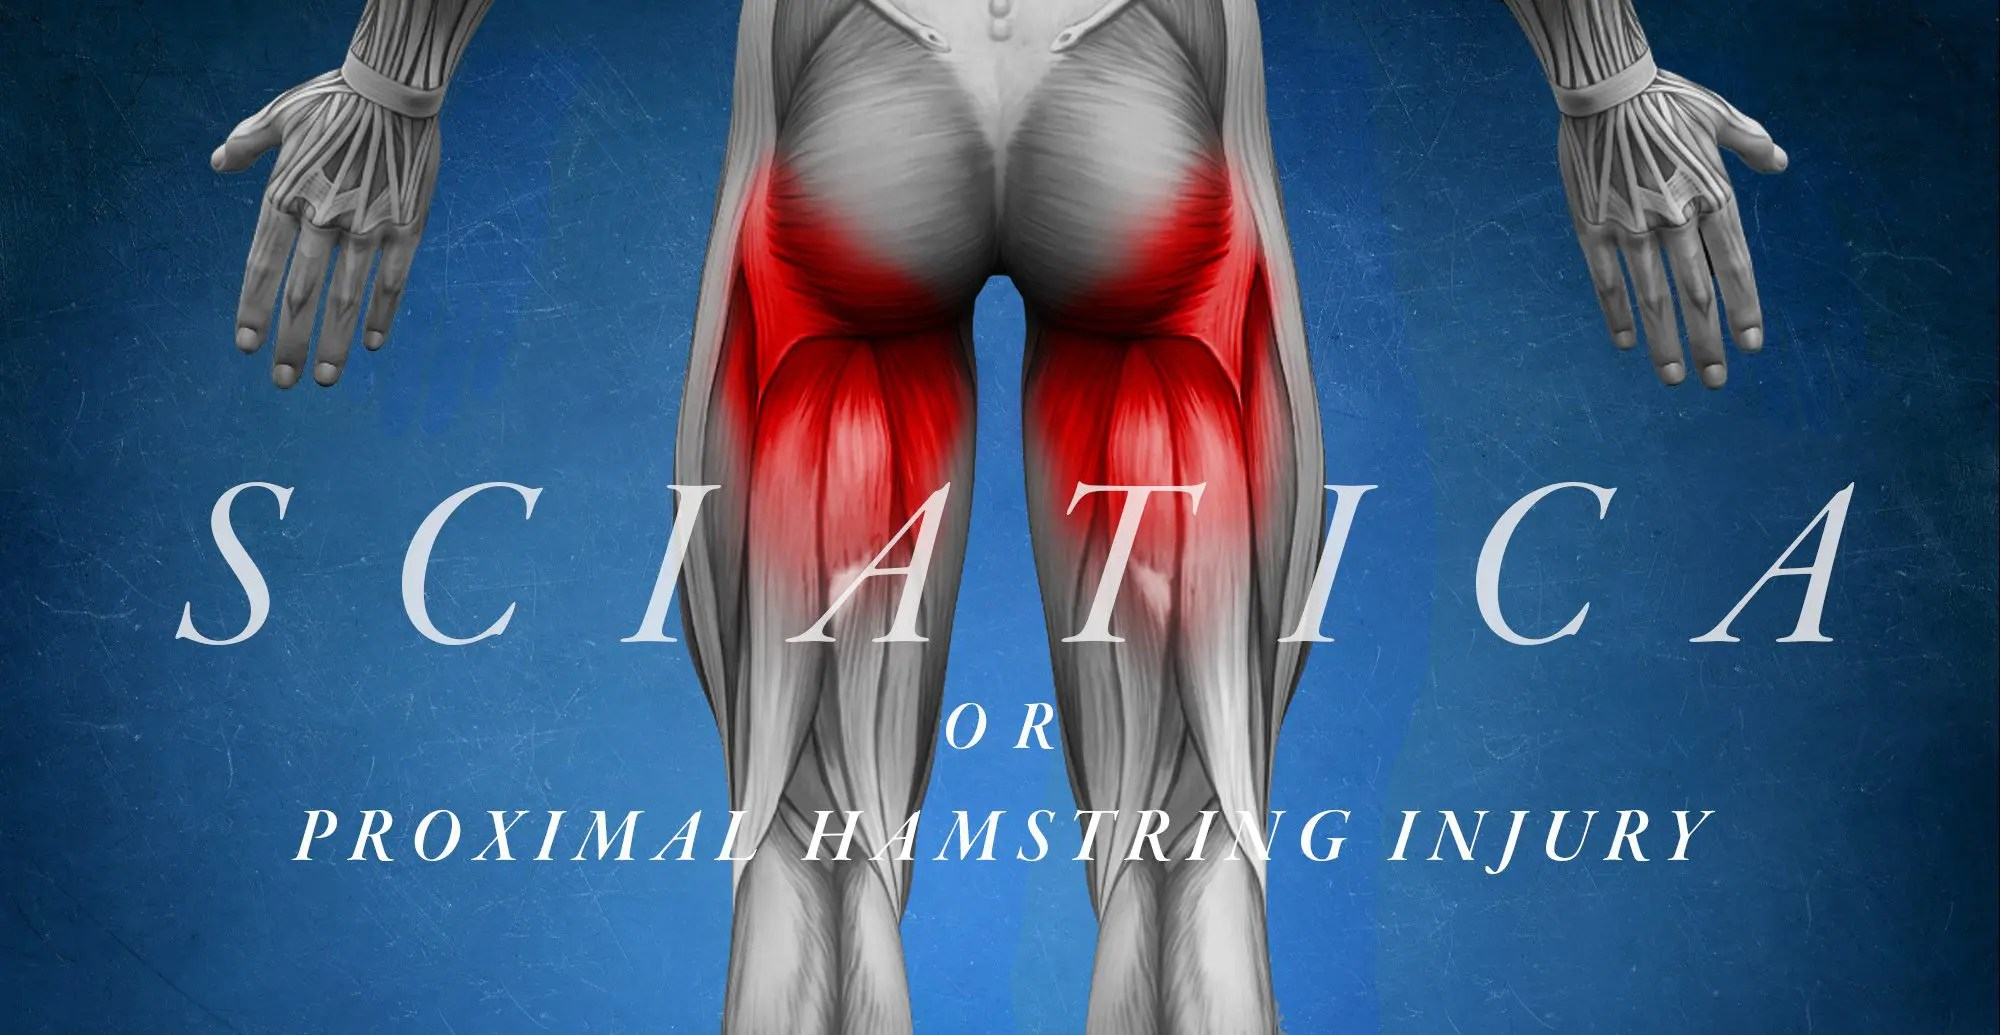 Sciatica or Proximal Hamstring Injury